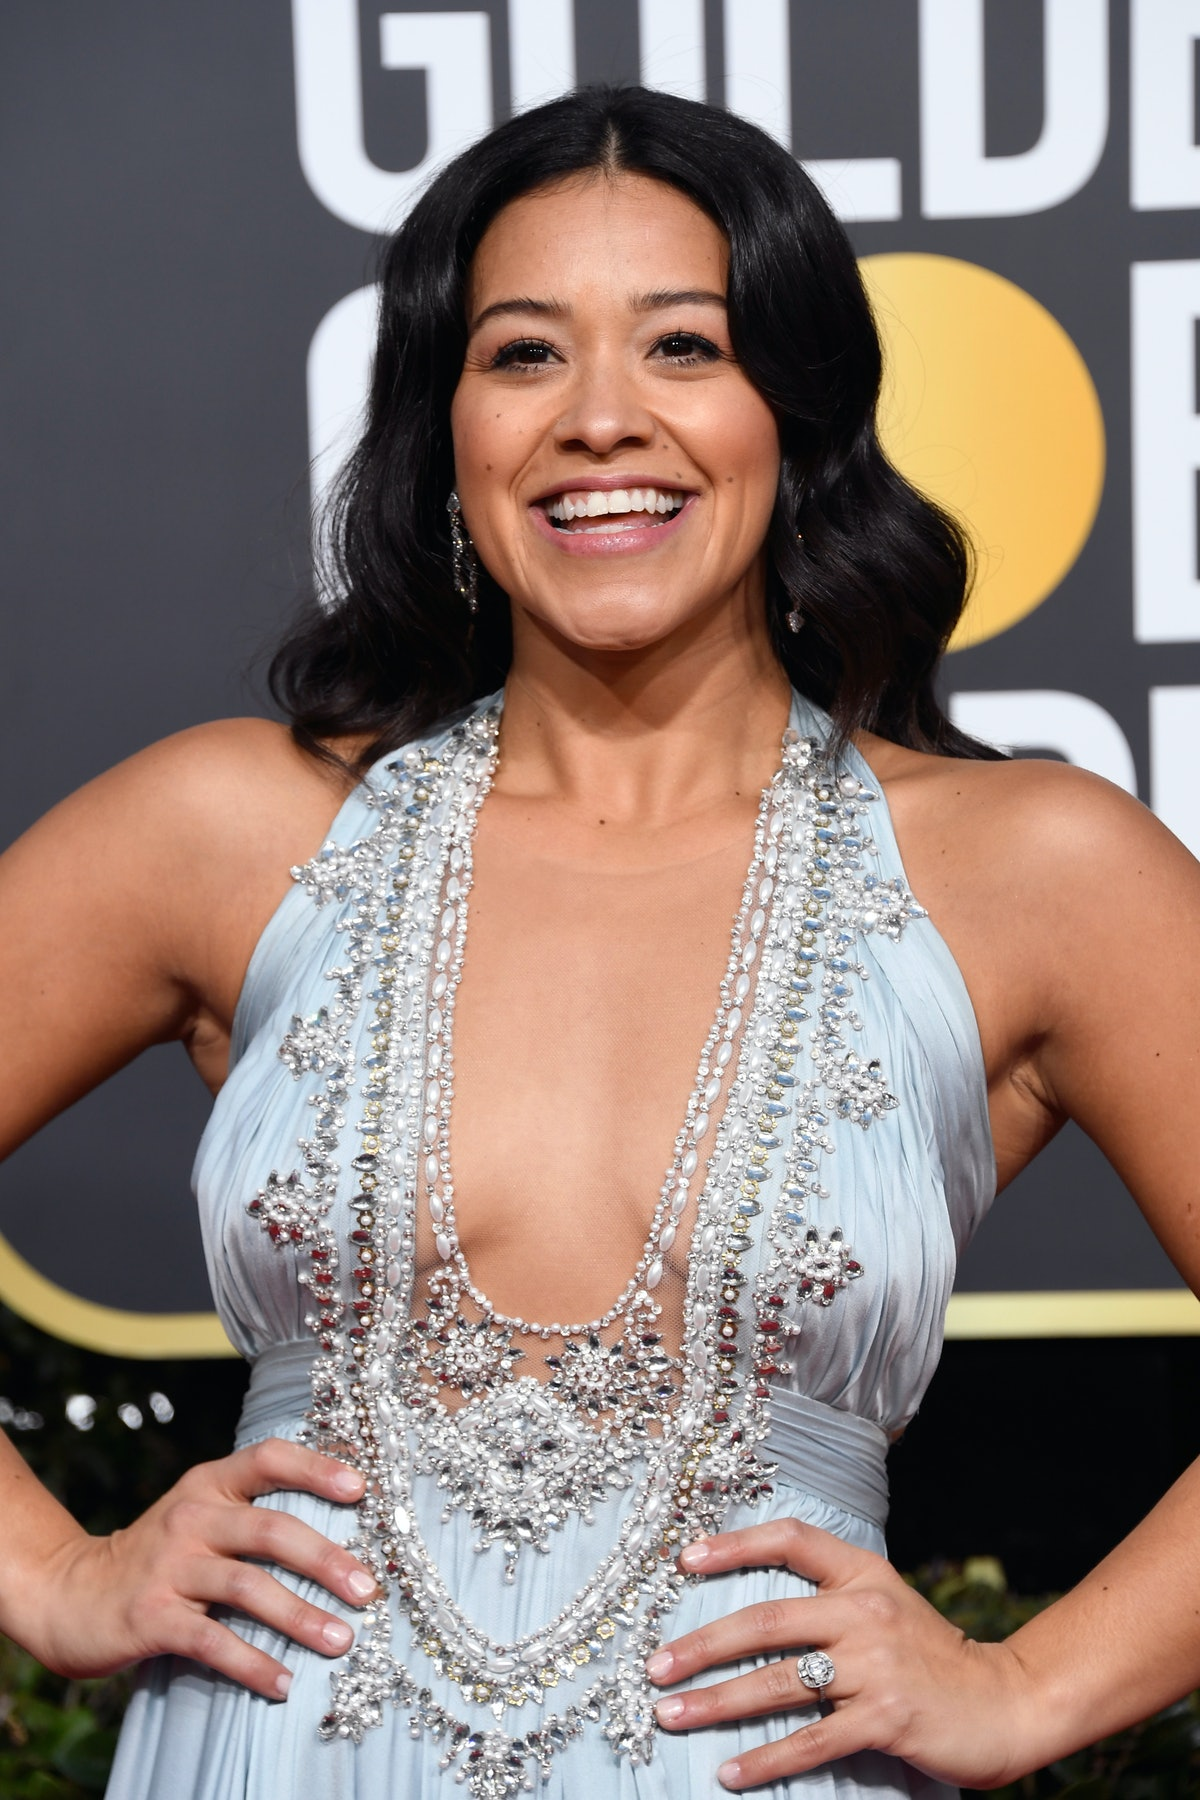 Gina Rodriguez's Recent Wedding Comments Prove Her Big Day Will Include The Things That Matter Most